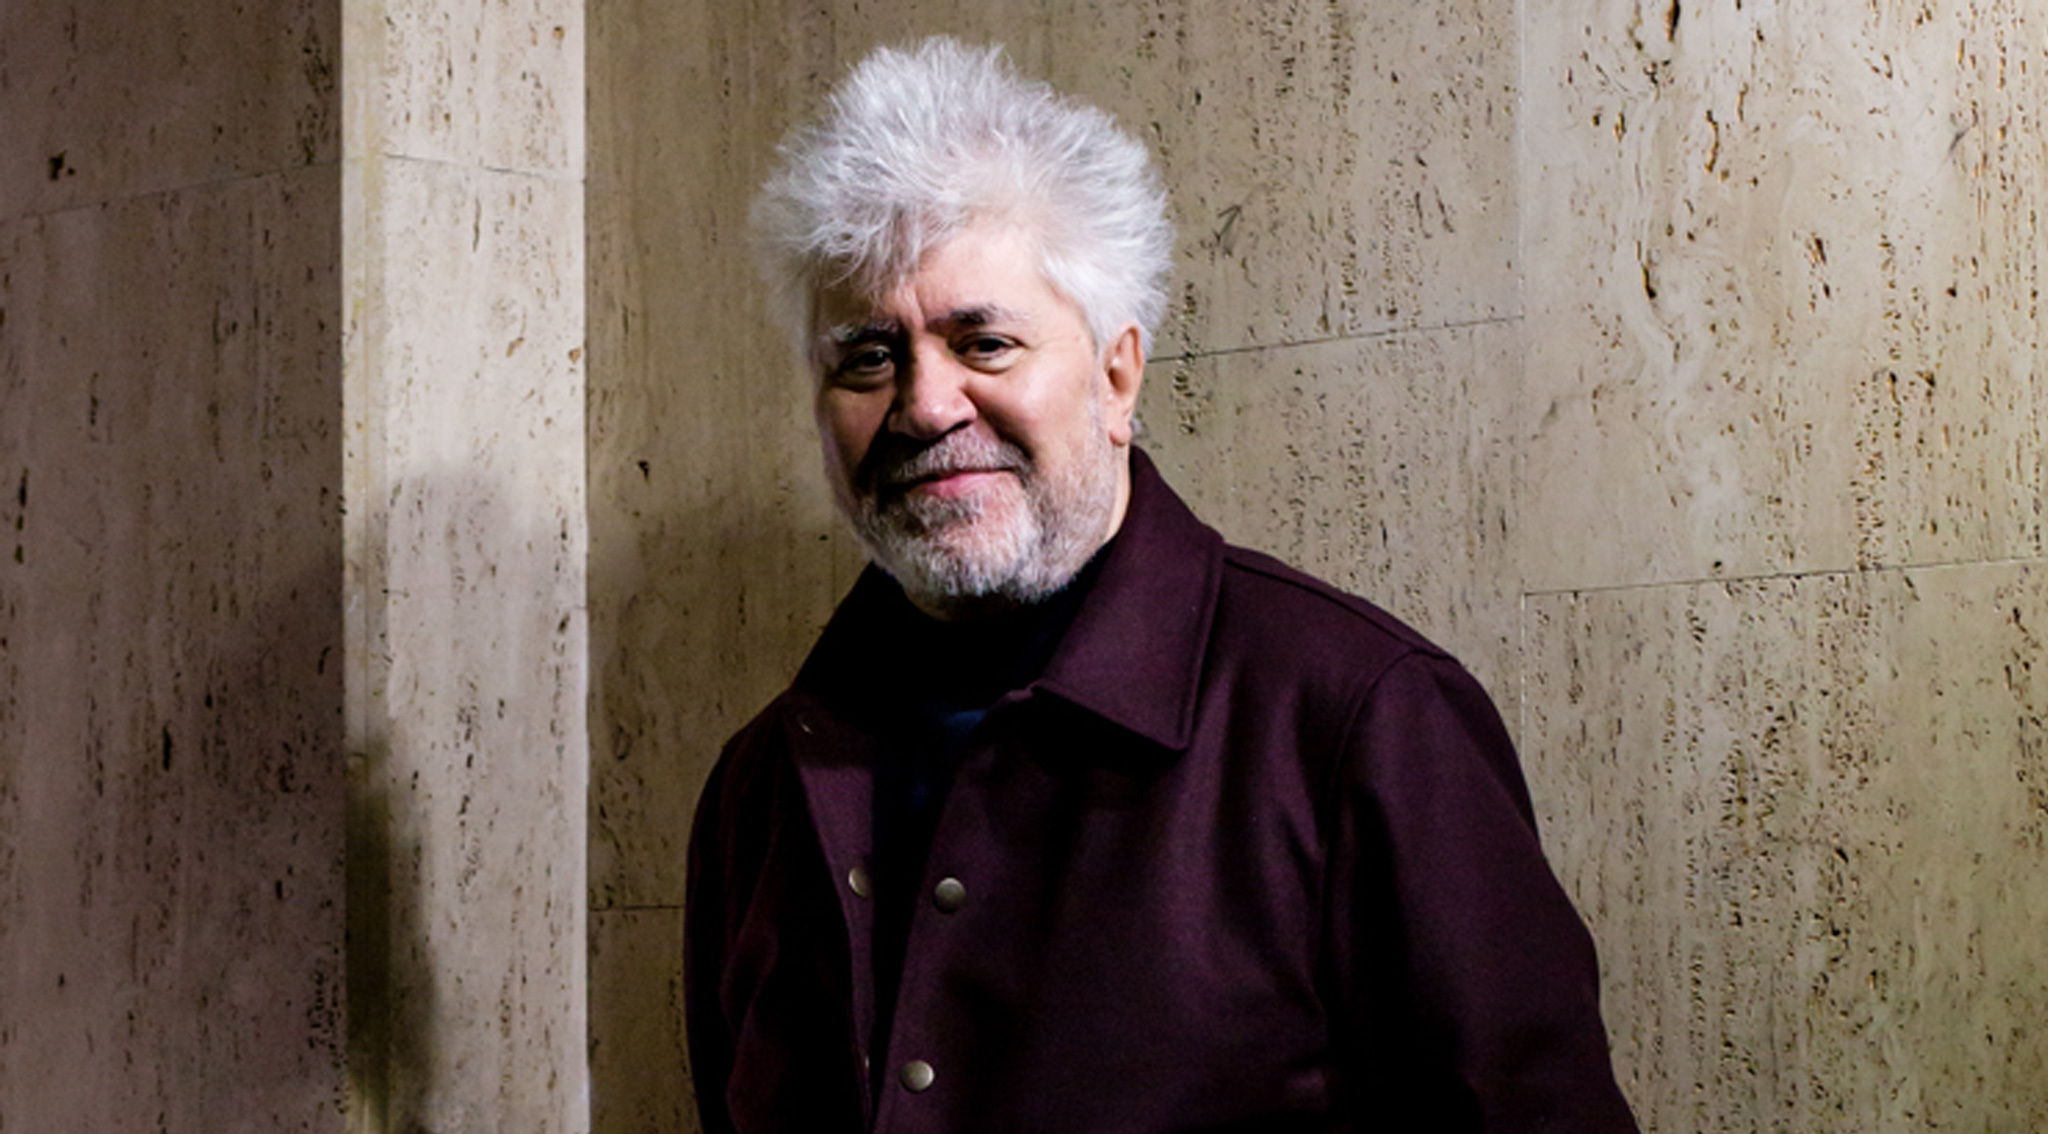 Ten things you didn't know about Pedro Almodóvar